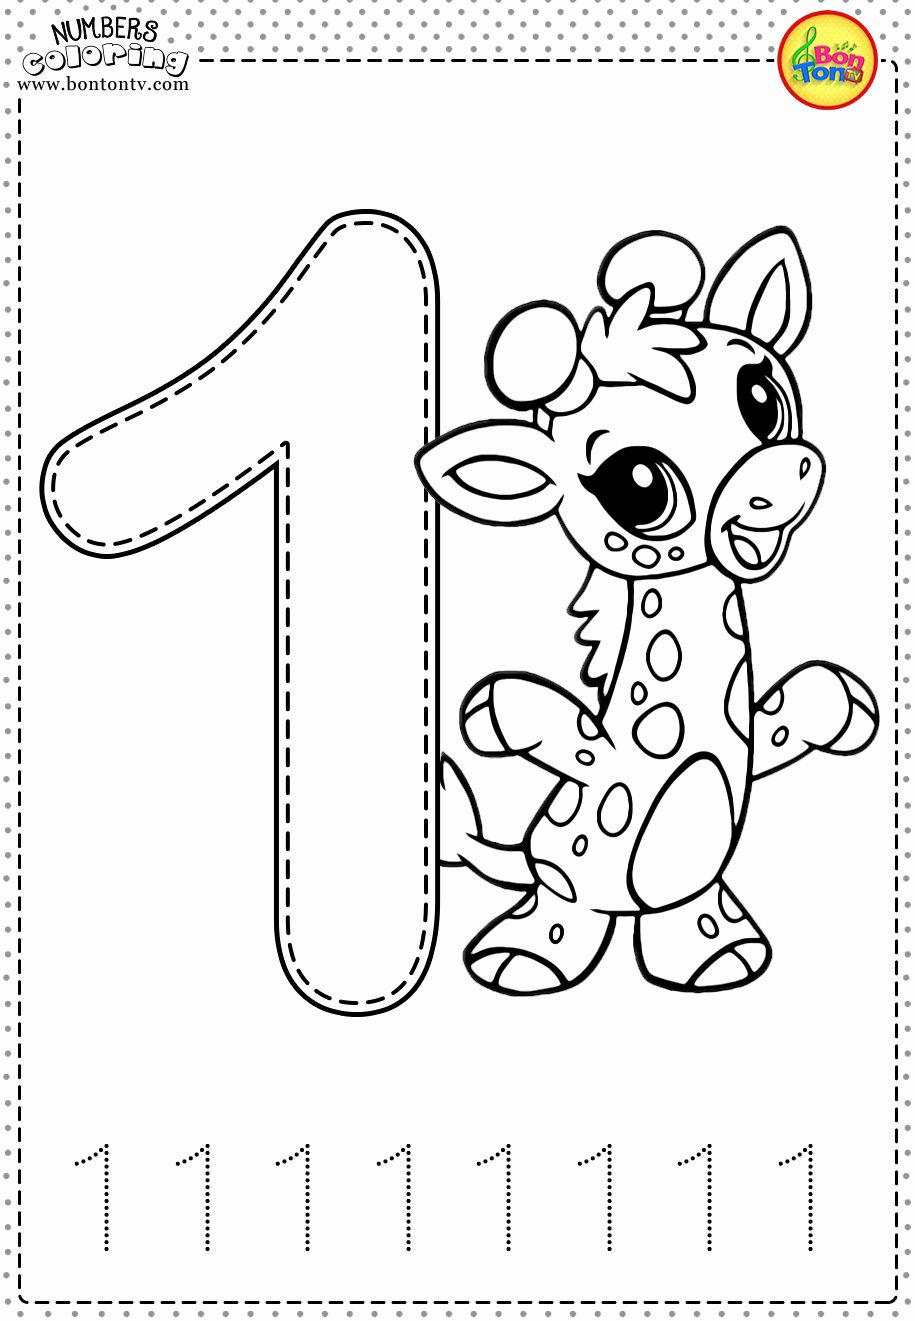 Number By Number Coloring Sheets Awesome Numbers 1 10 For Kids Math P Preschool Worksheets Free Printables Free Preschool Printables Kids Worksheets Printables